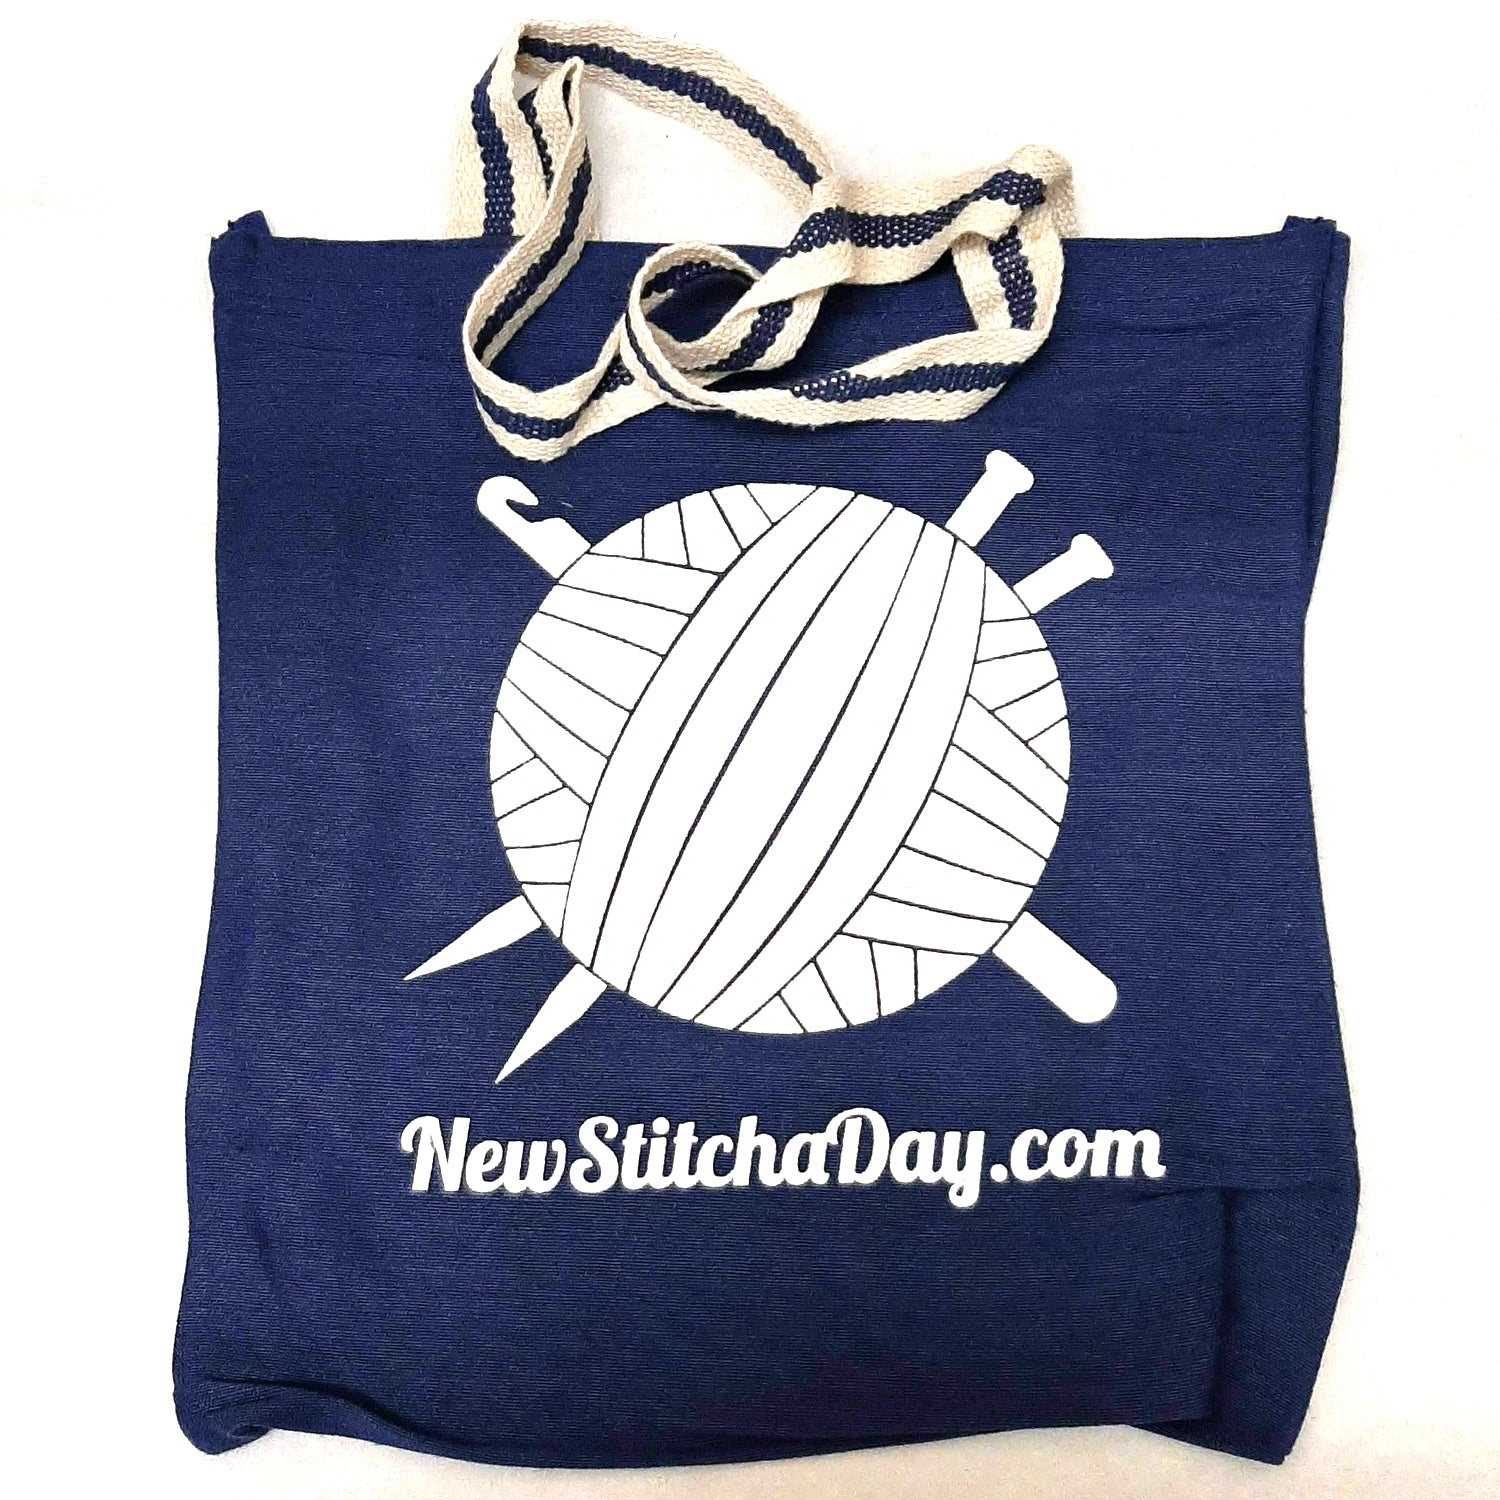 New Stitch A Day Retro Tote